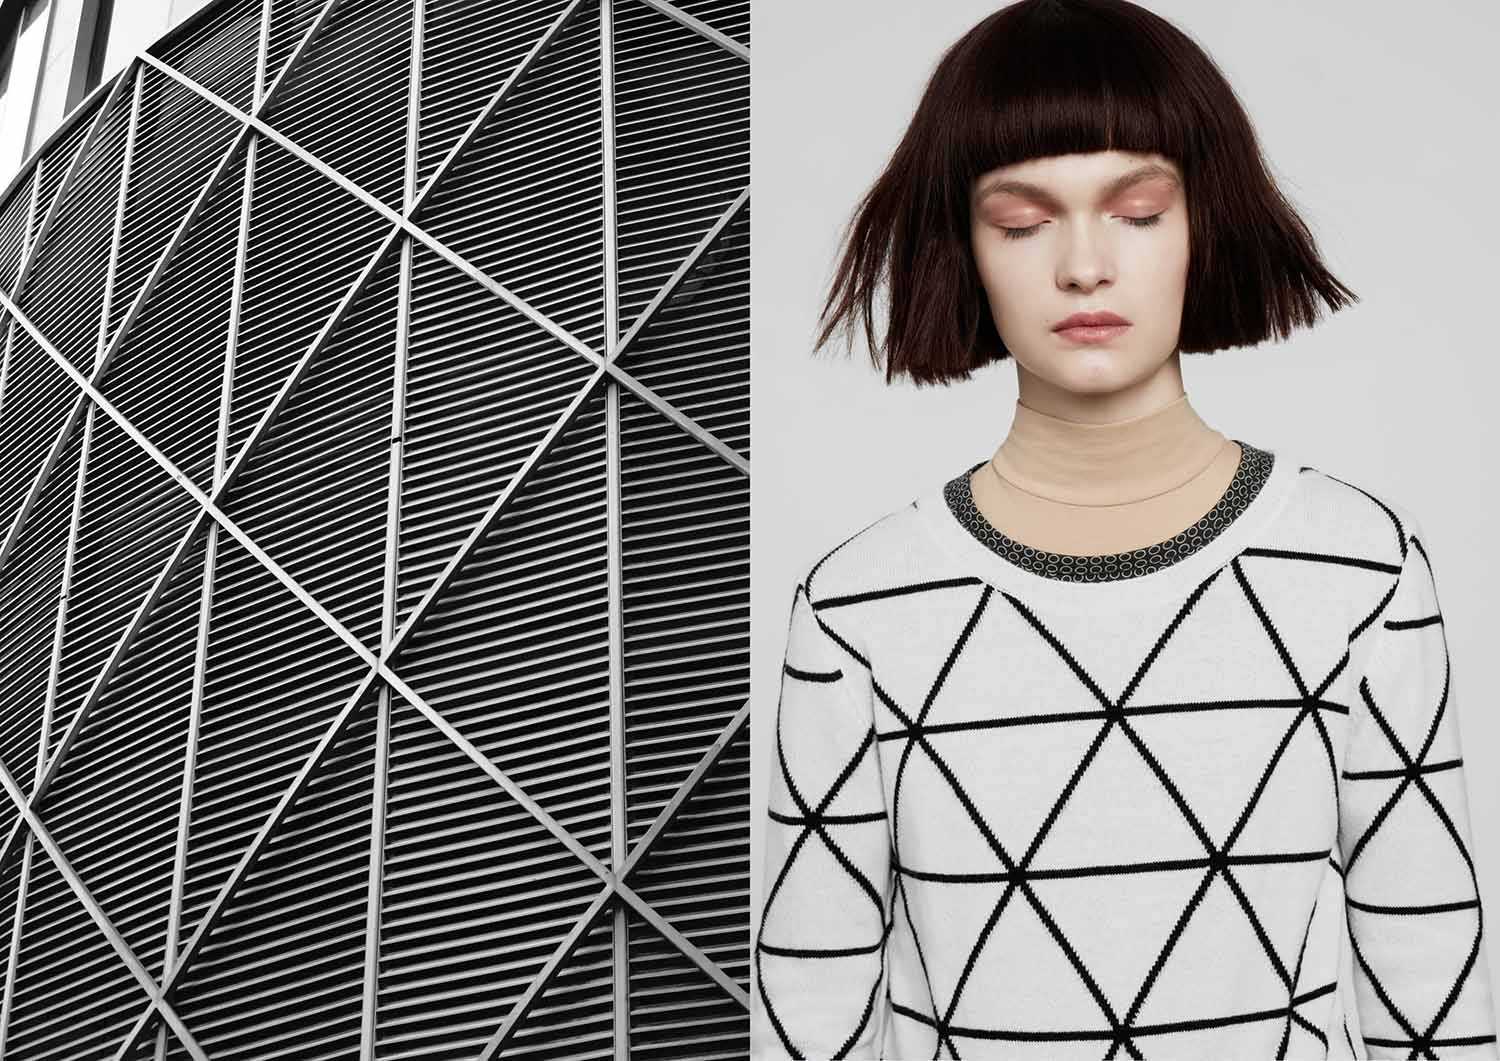 Patternity designed a 28-piece collection for knitwear specialists, Chinti & Parker for their Autumn Winter 2013 collection. The imagery reveals the way Patternity are inspired by the patterns made by architecture.